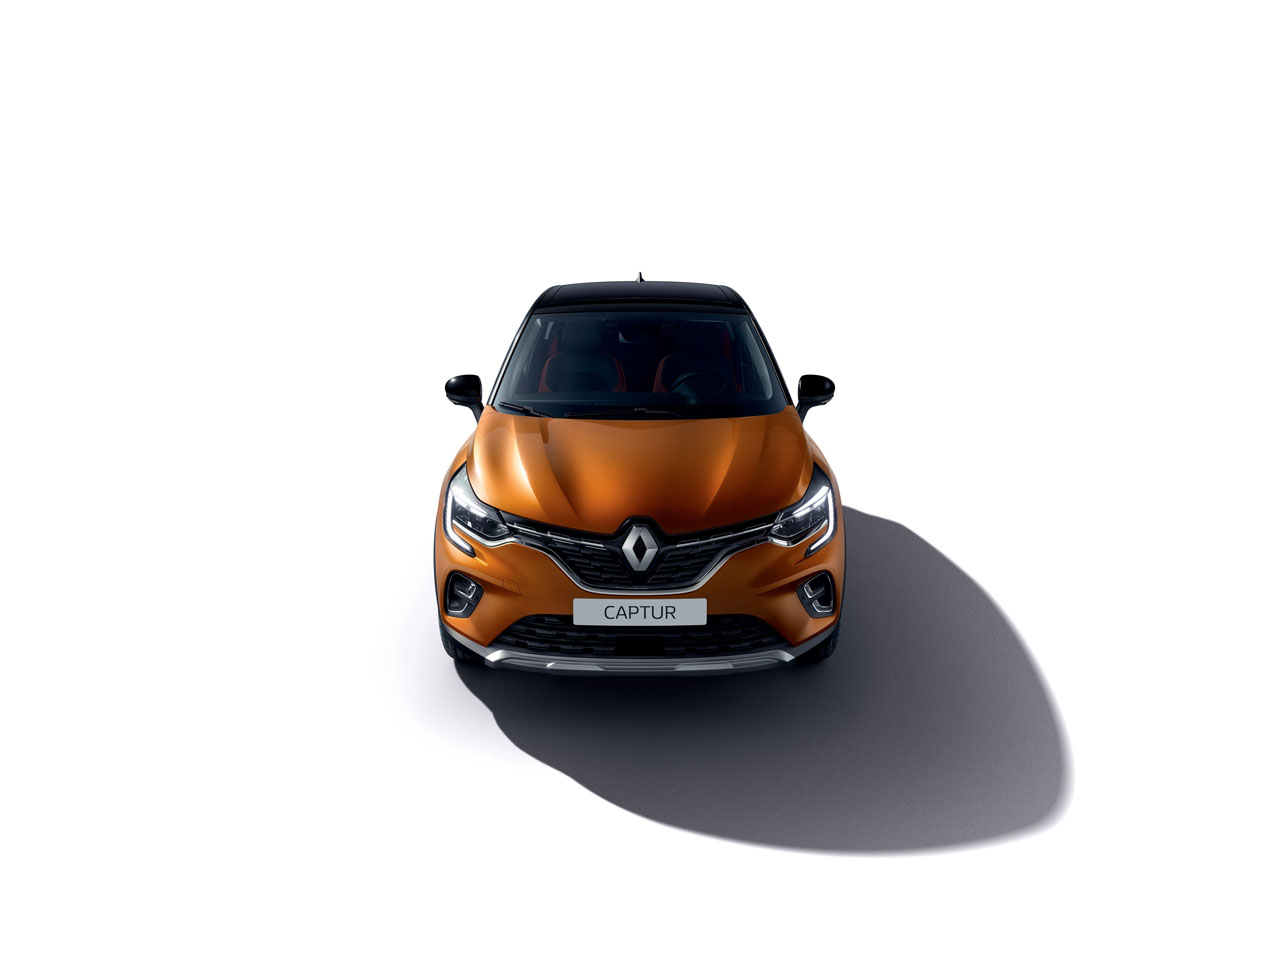 Renault shows off all-new Captur SUV and a glimpse of the